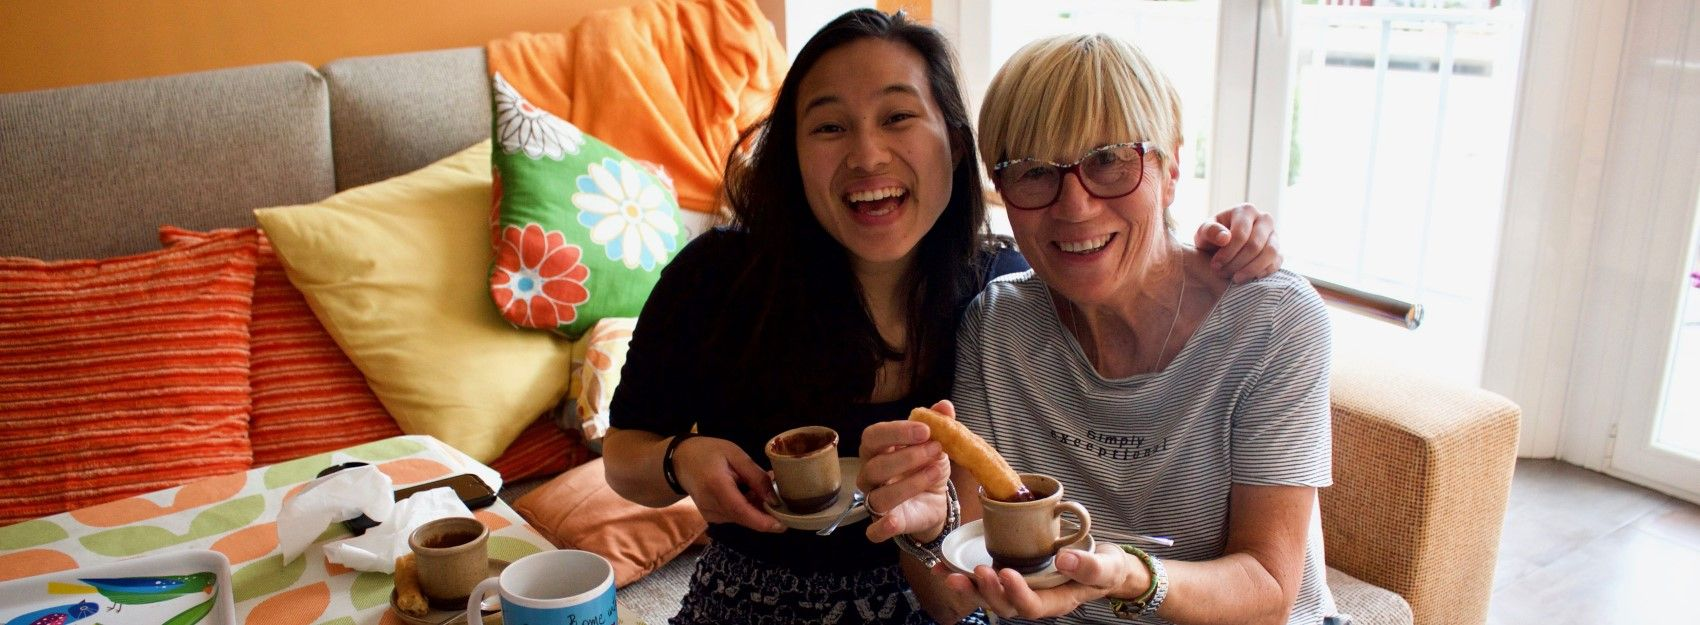 Student in Spain with her host mom in their apartment